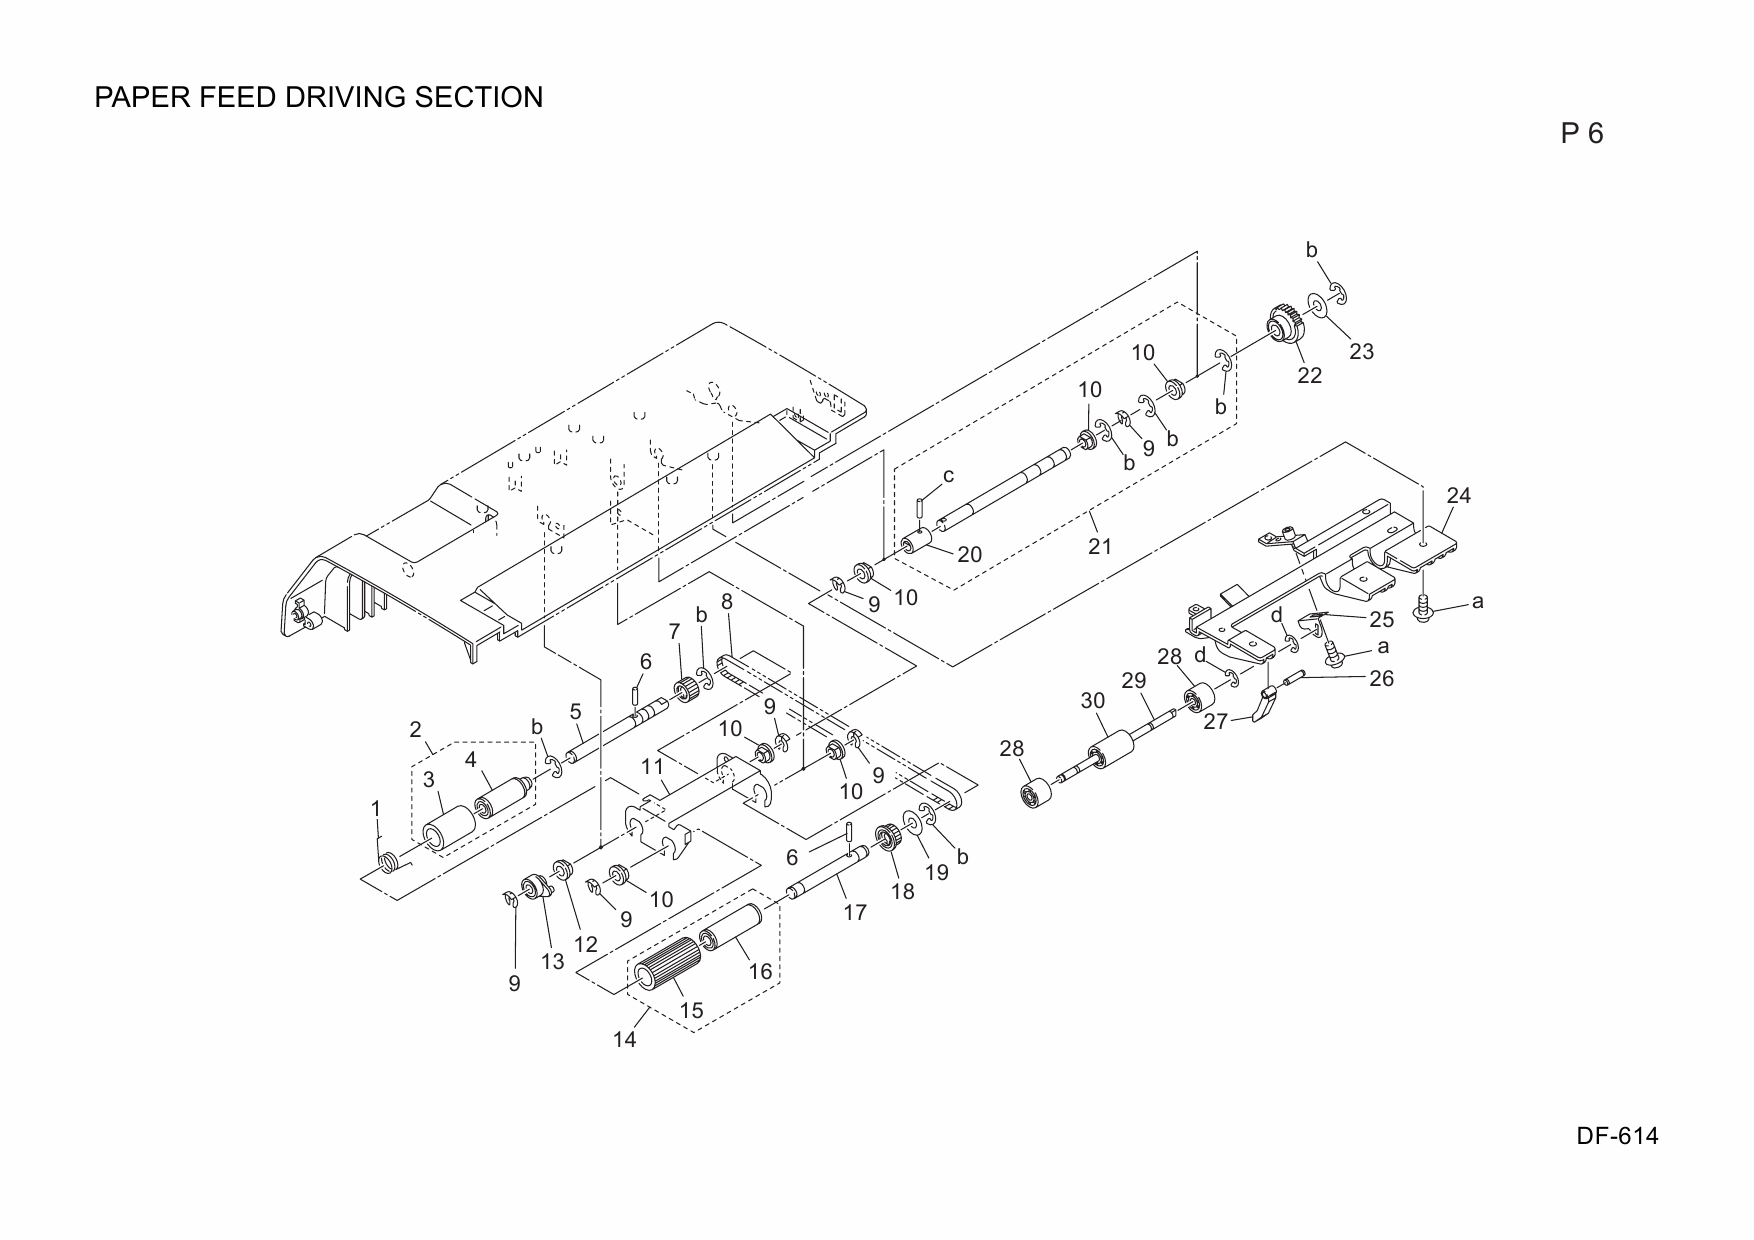 Konica-Minolta Options DF-614 A0R4 Parts Manual